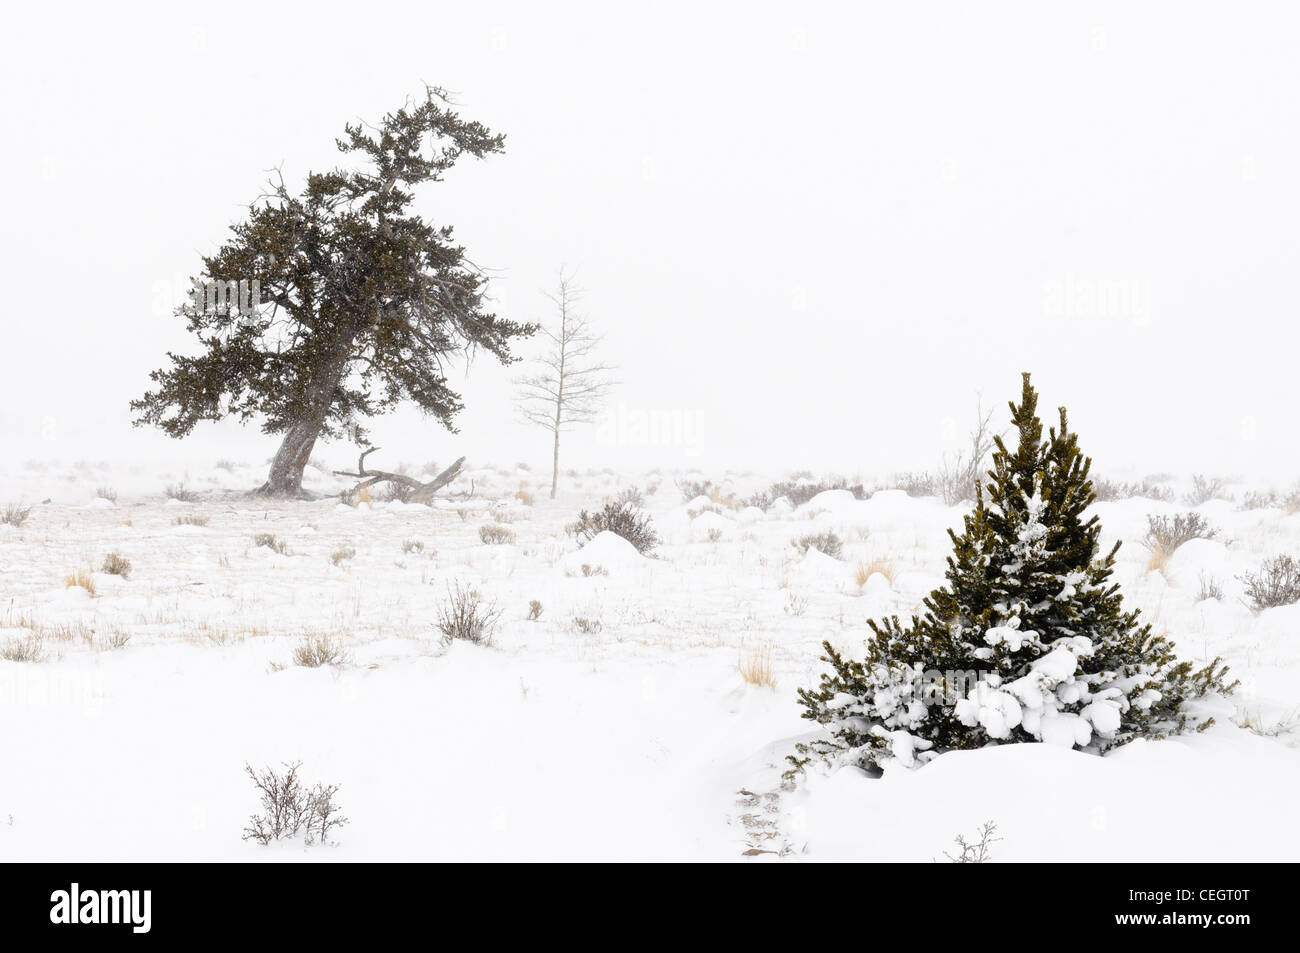 Conifer tree in snowstorm, Fairplay, Colorado - Stock Image